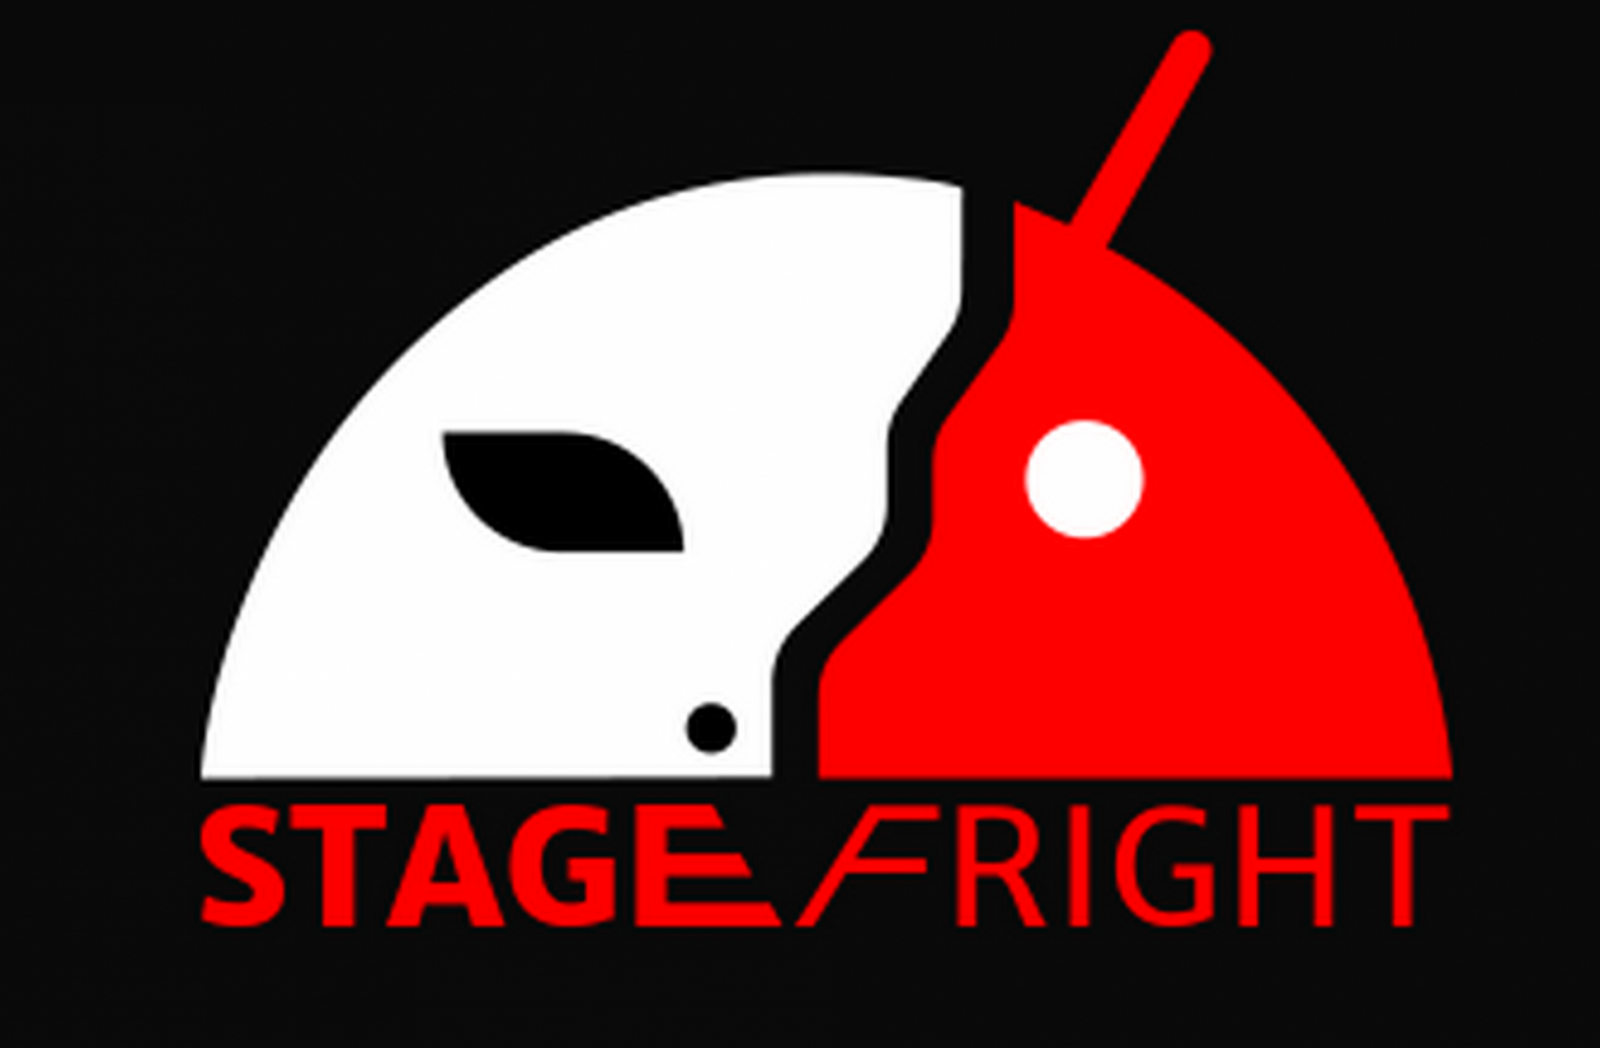 Stagefright android vulnerability